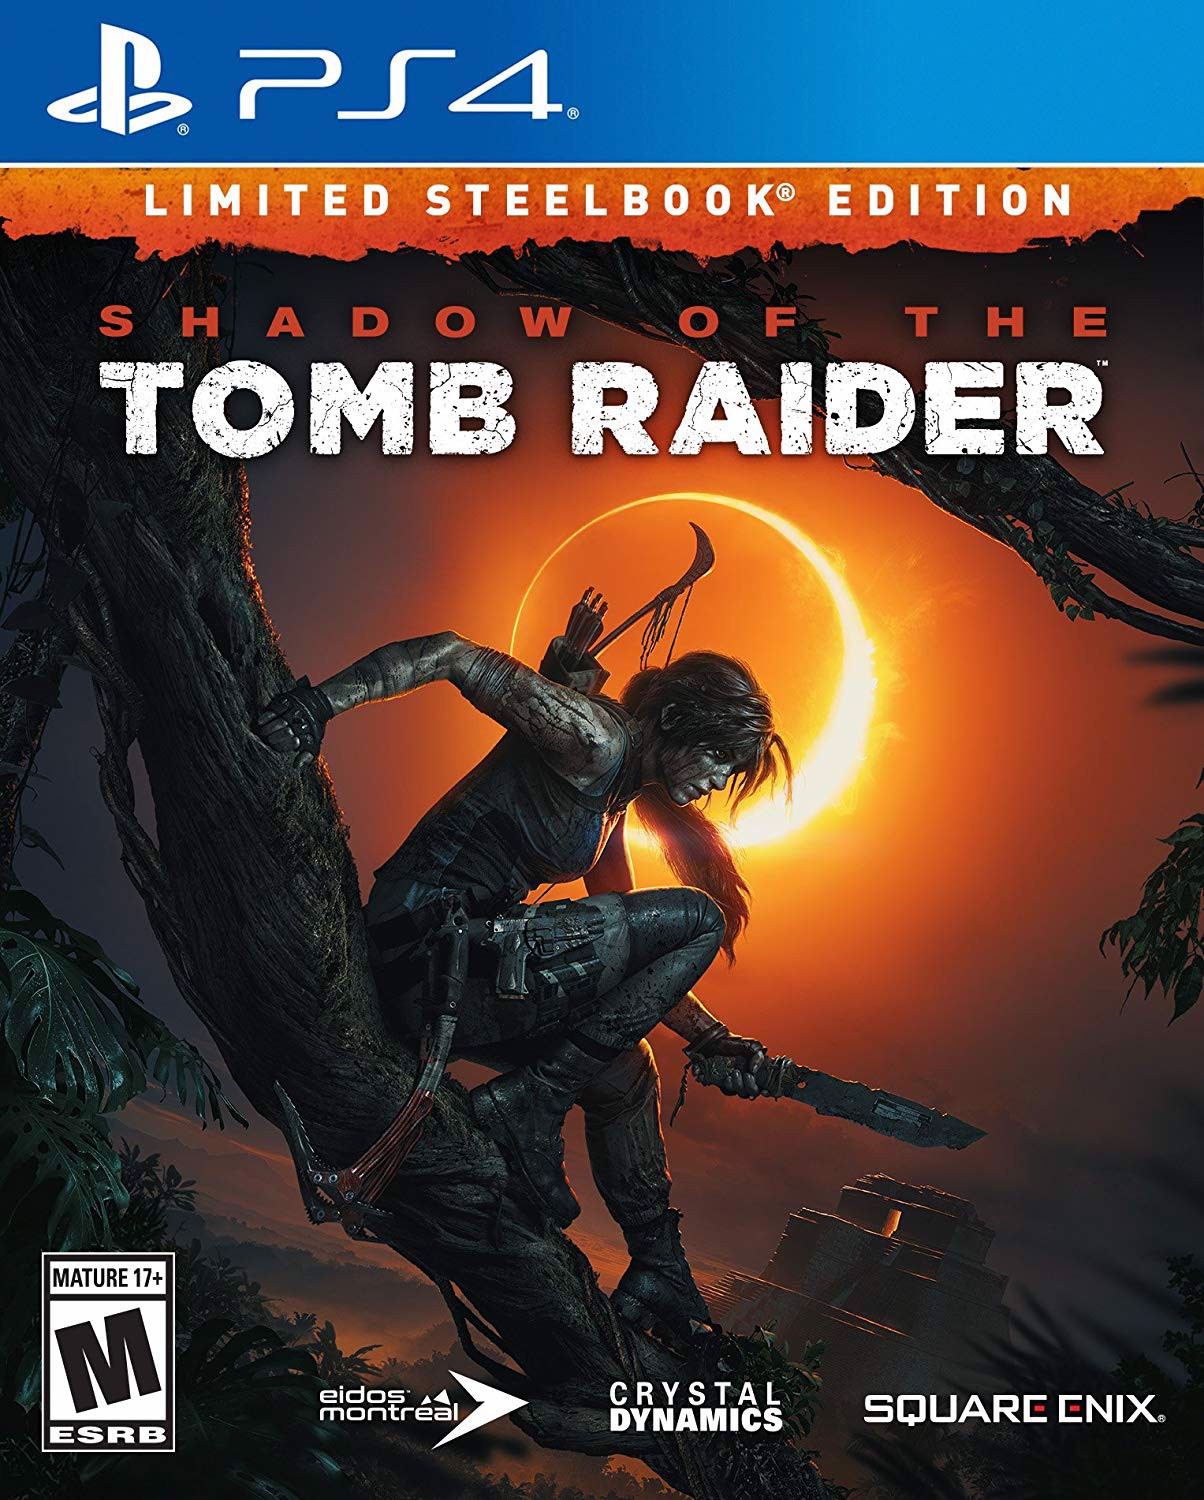 644 - Shadow of the Tomb Raider- Limited Steelbook Edition